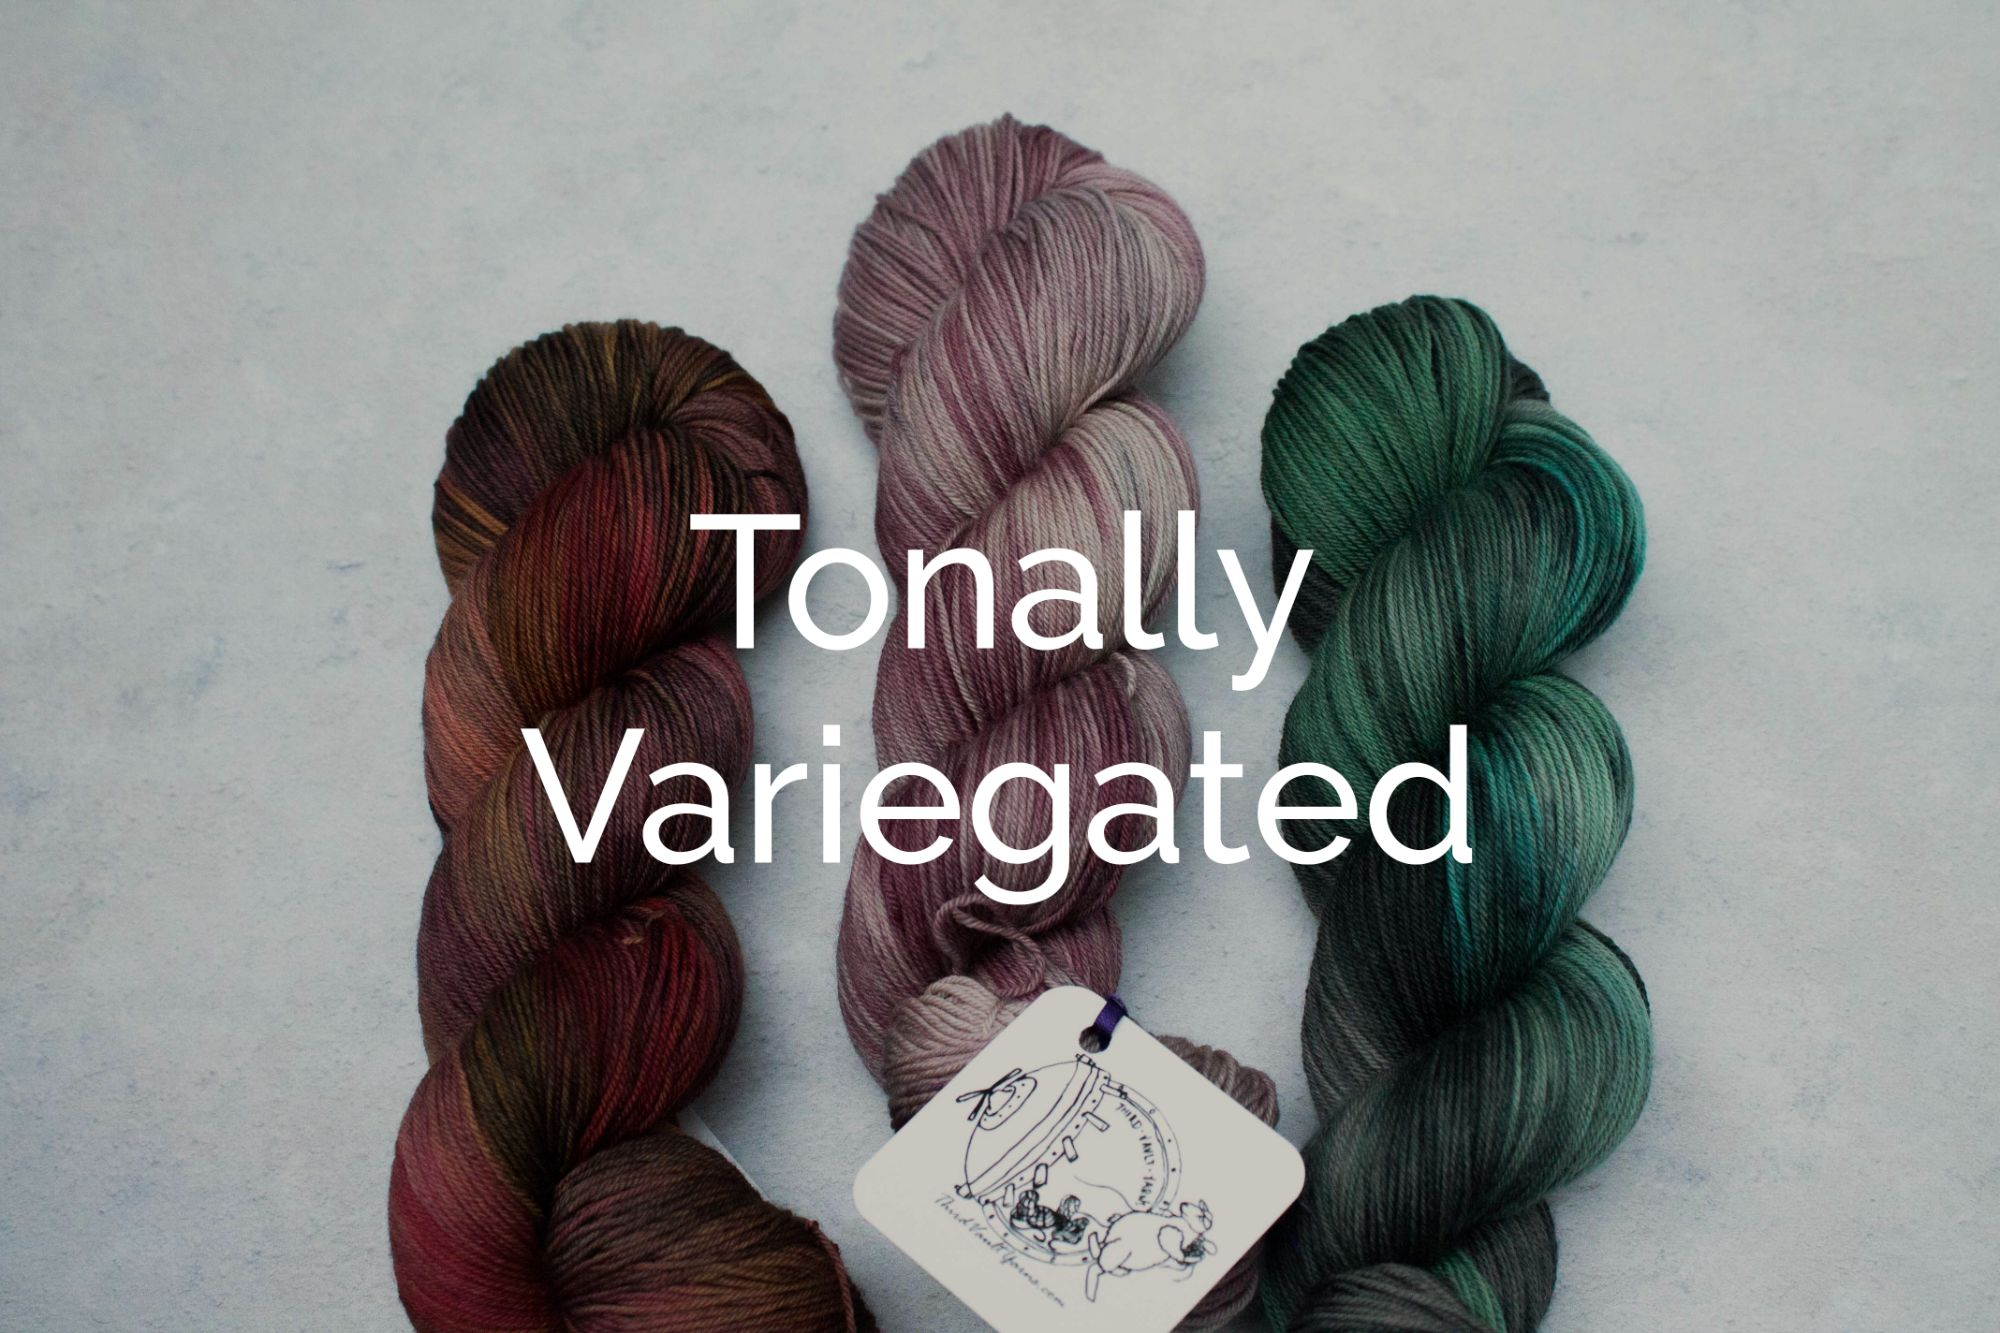 Shop our Tonally variegated yarns